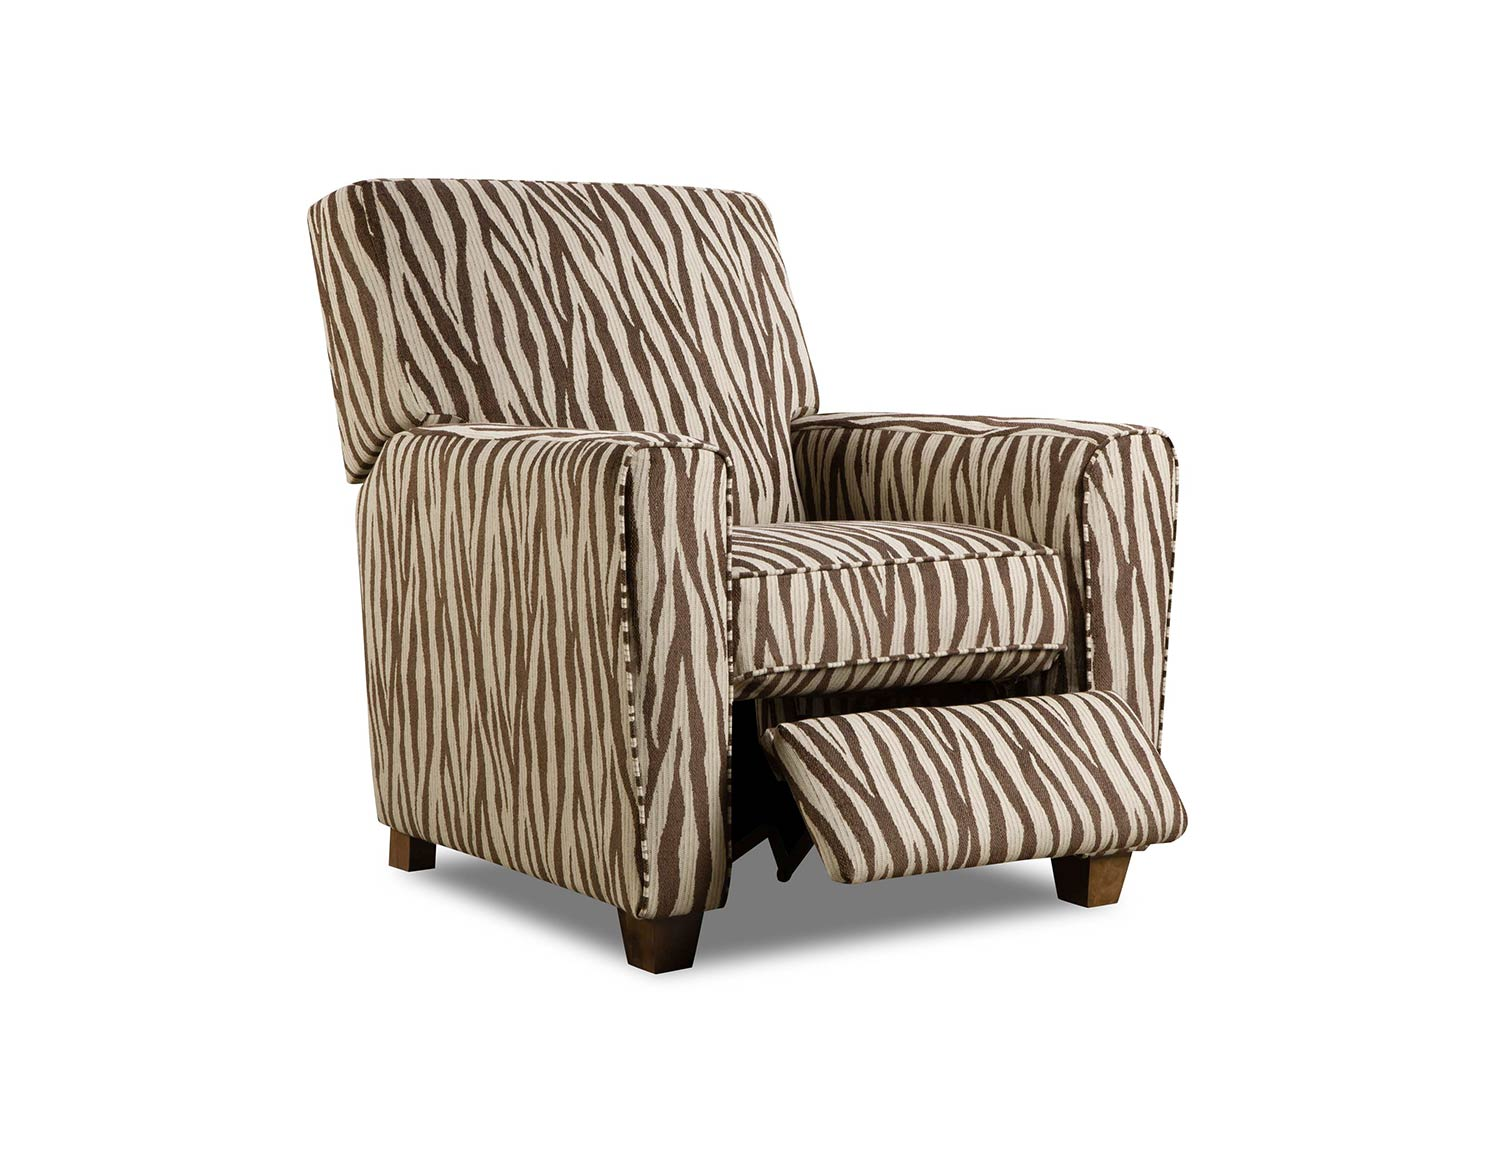 Chelsea Home Barras Recliner Chair - Zebra Chocolate